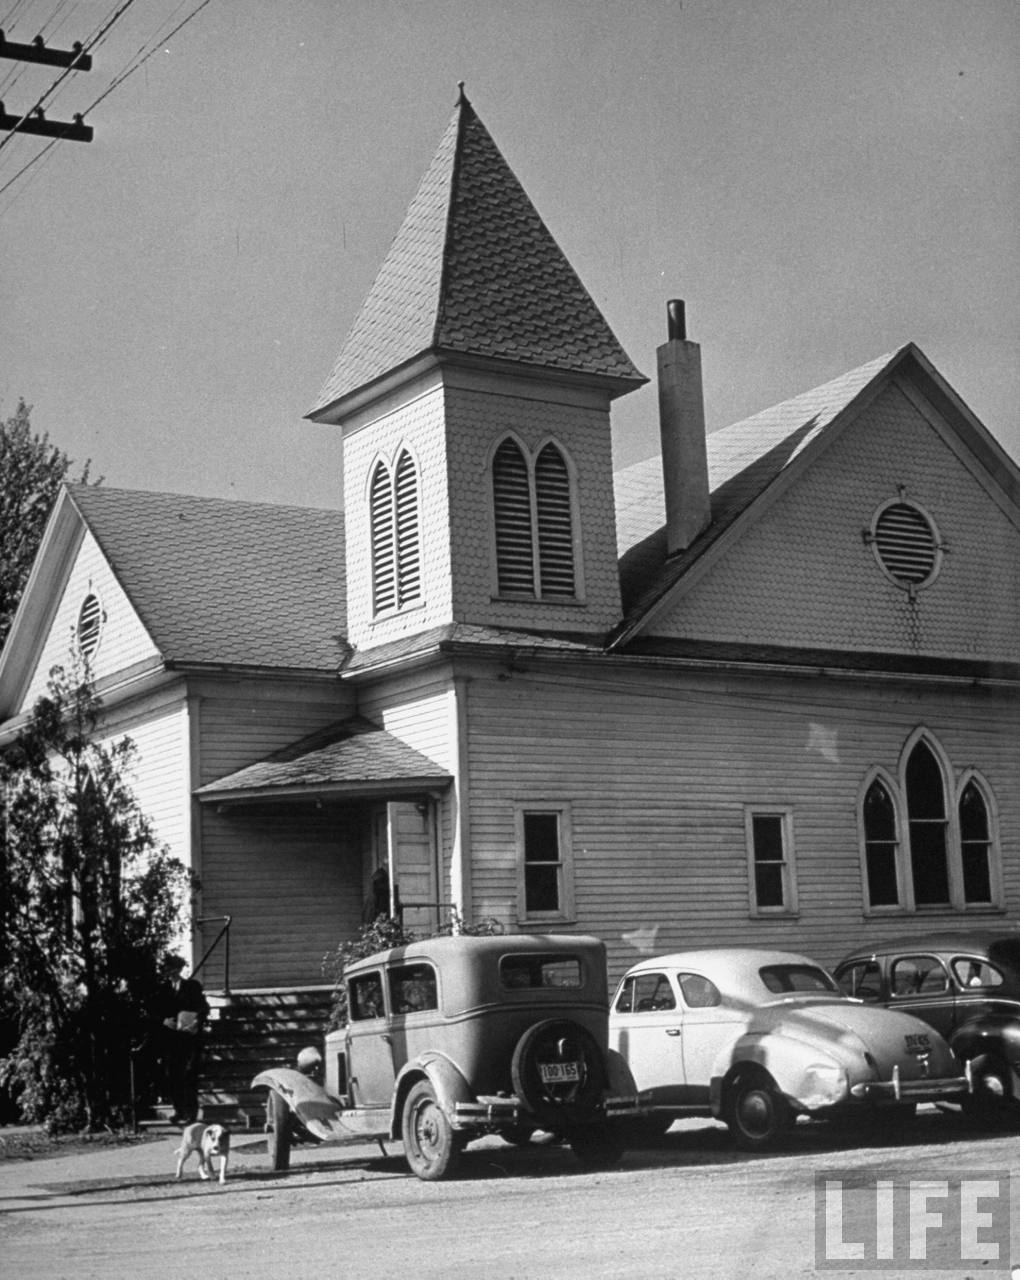 Grandview Baptist Church about a mile from the Truman family farm (from photo essay re Harry Trumans Missouri).